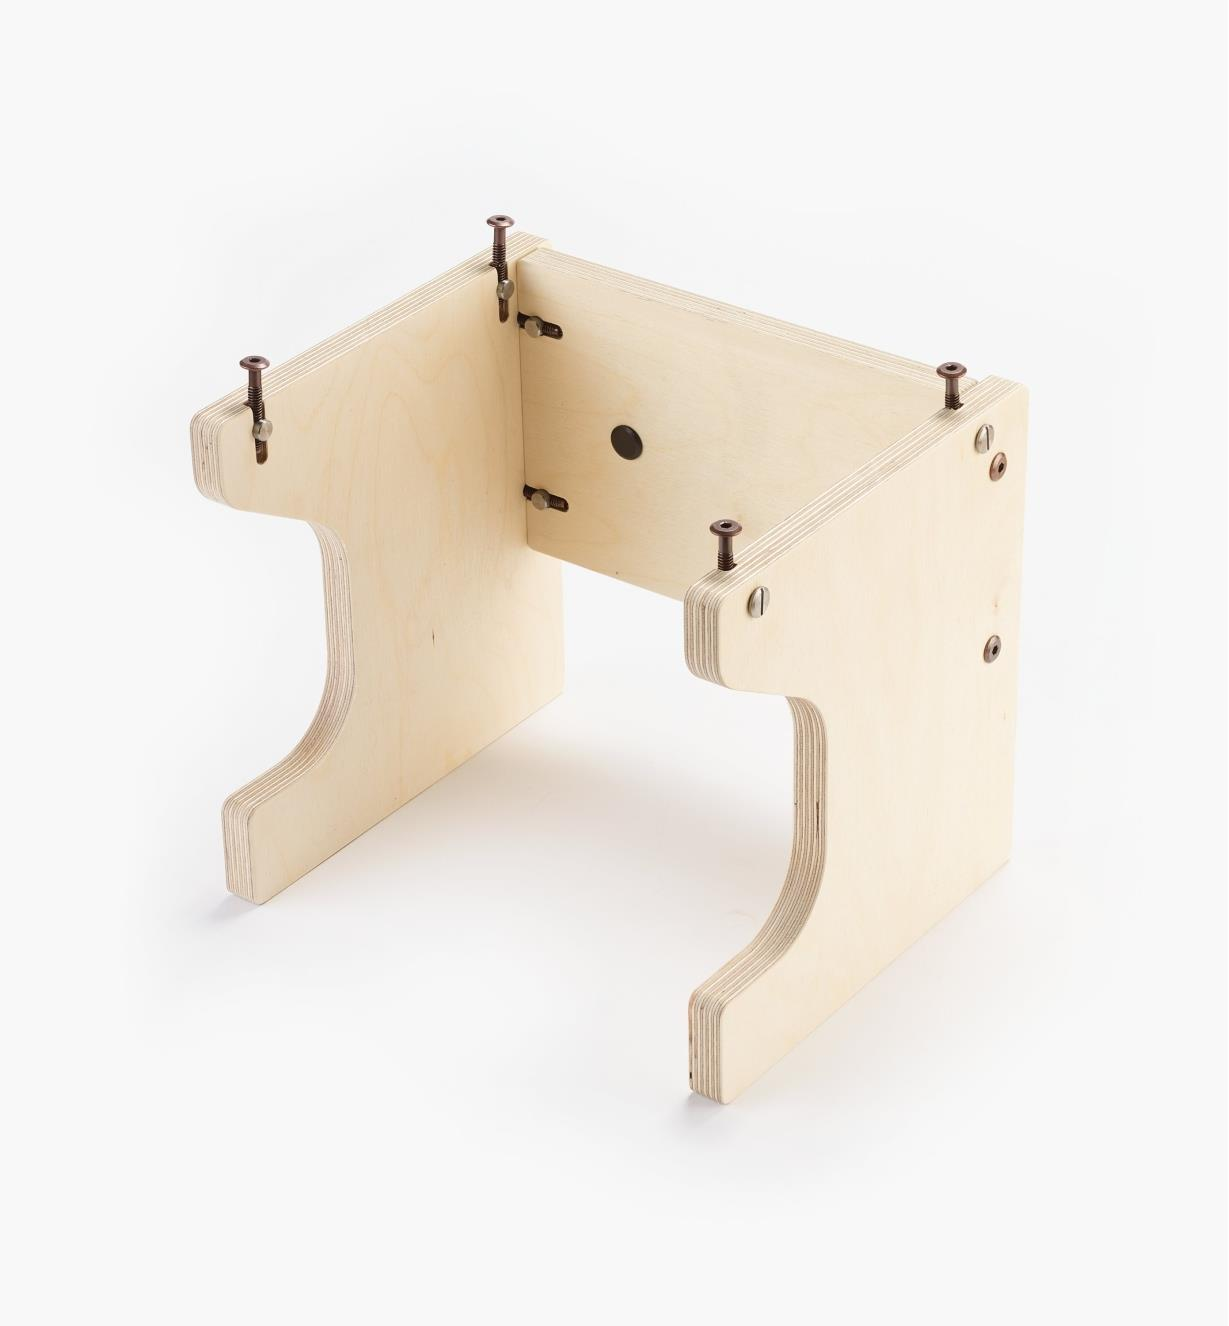 05J6702 - Veritas Table Base for Compact Routers